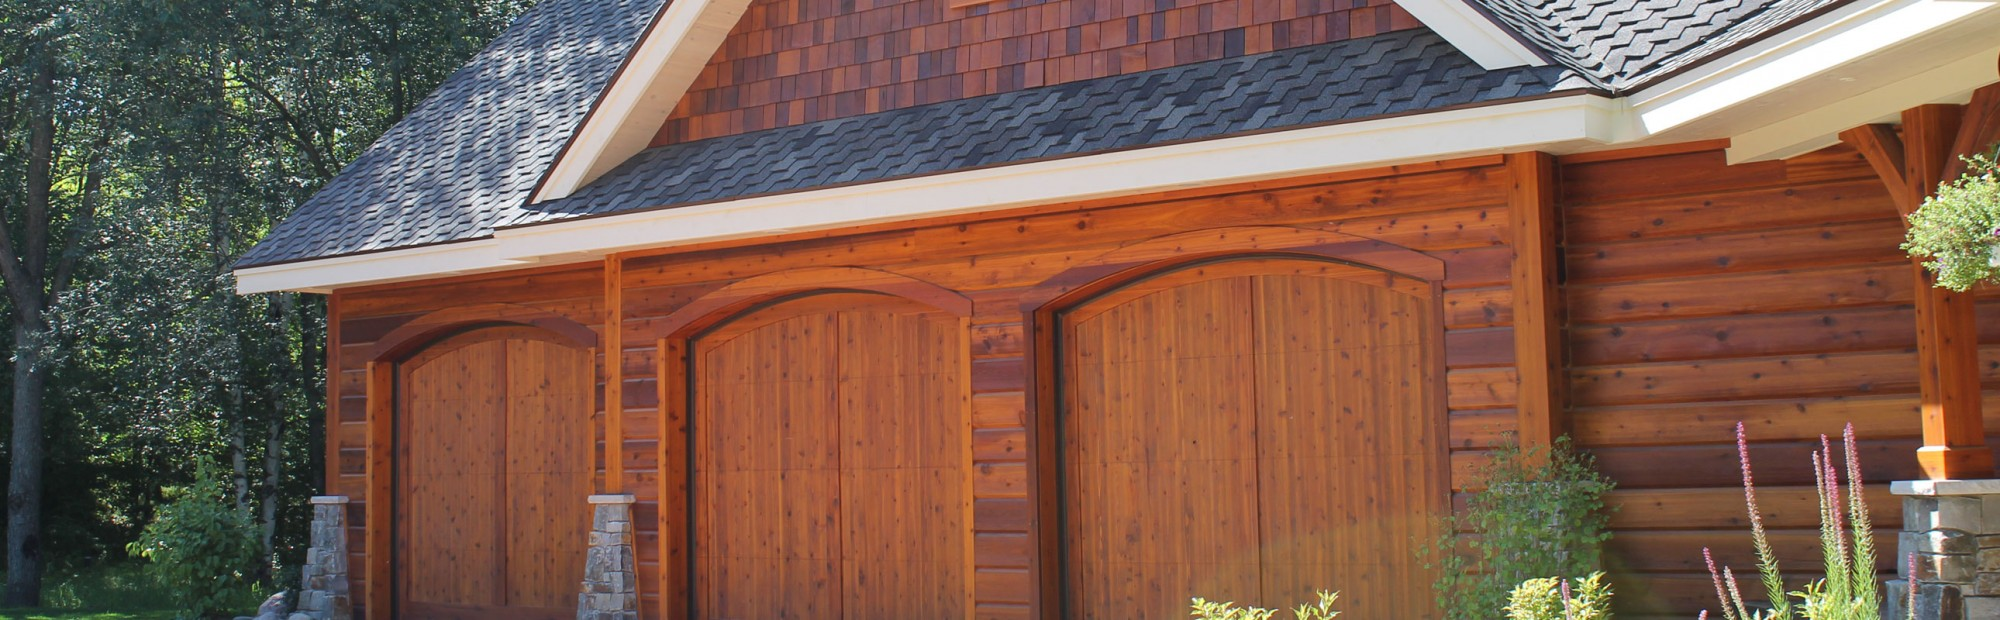 Tongue And Groove Exterior Wood Siding Tongue And Groove Exterior Wood Siding With Tongue And